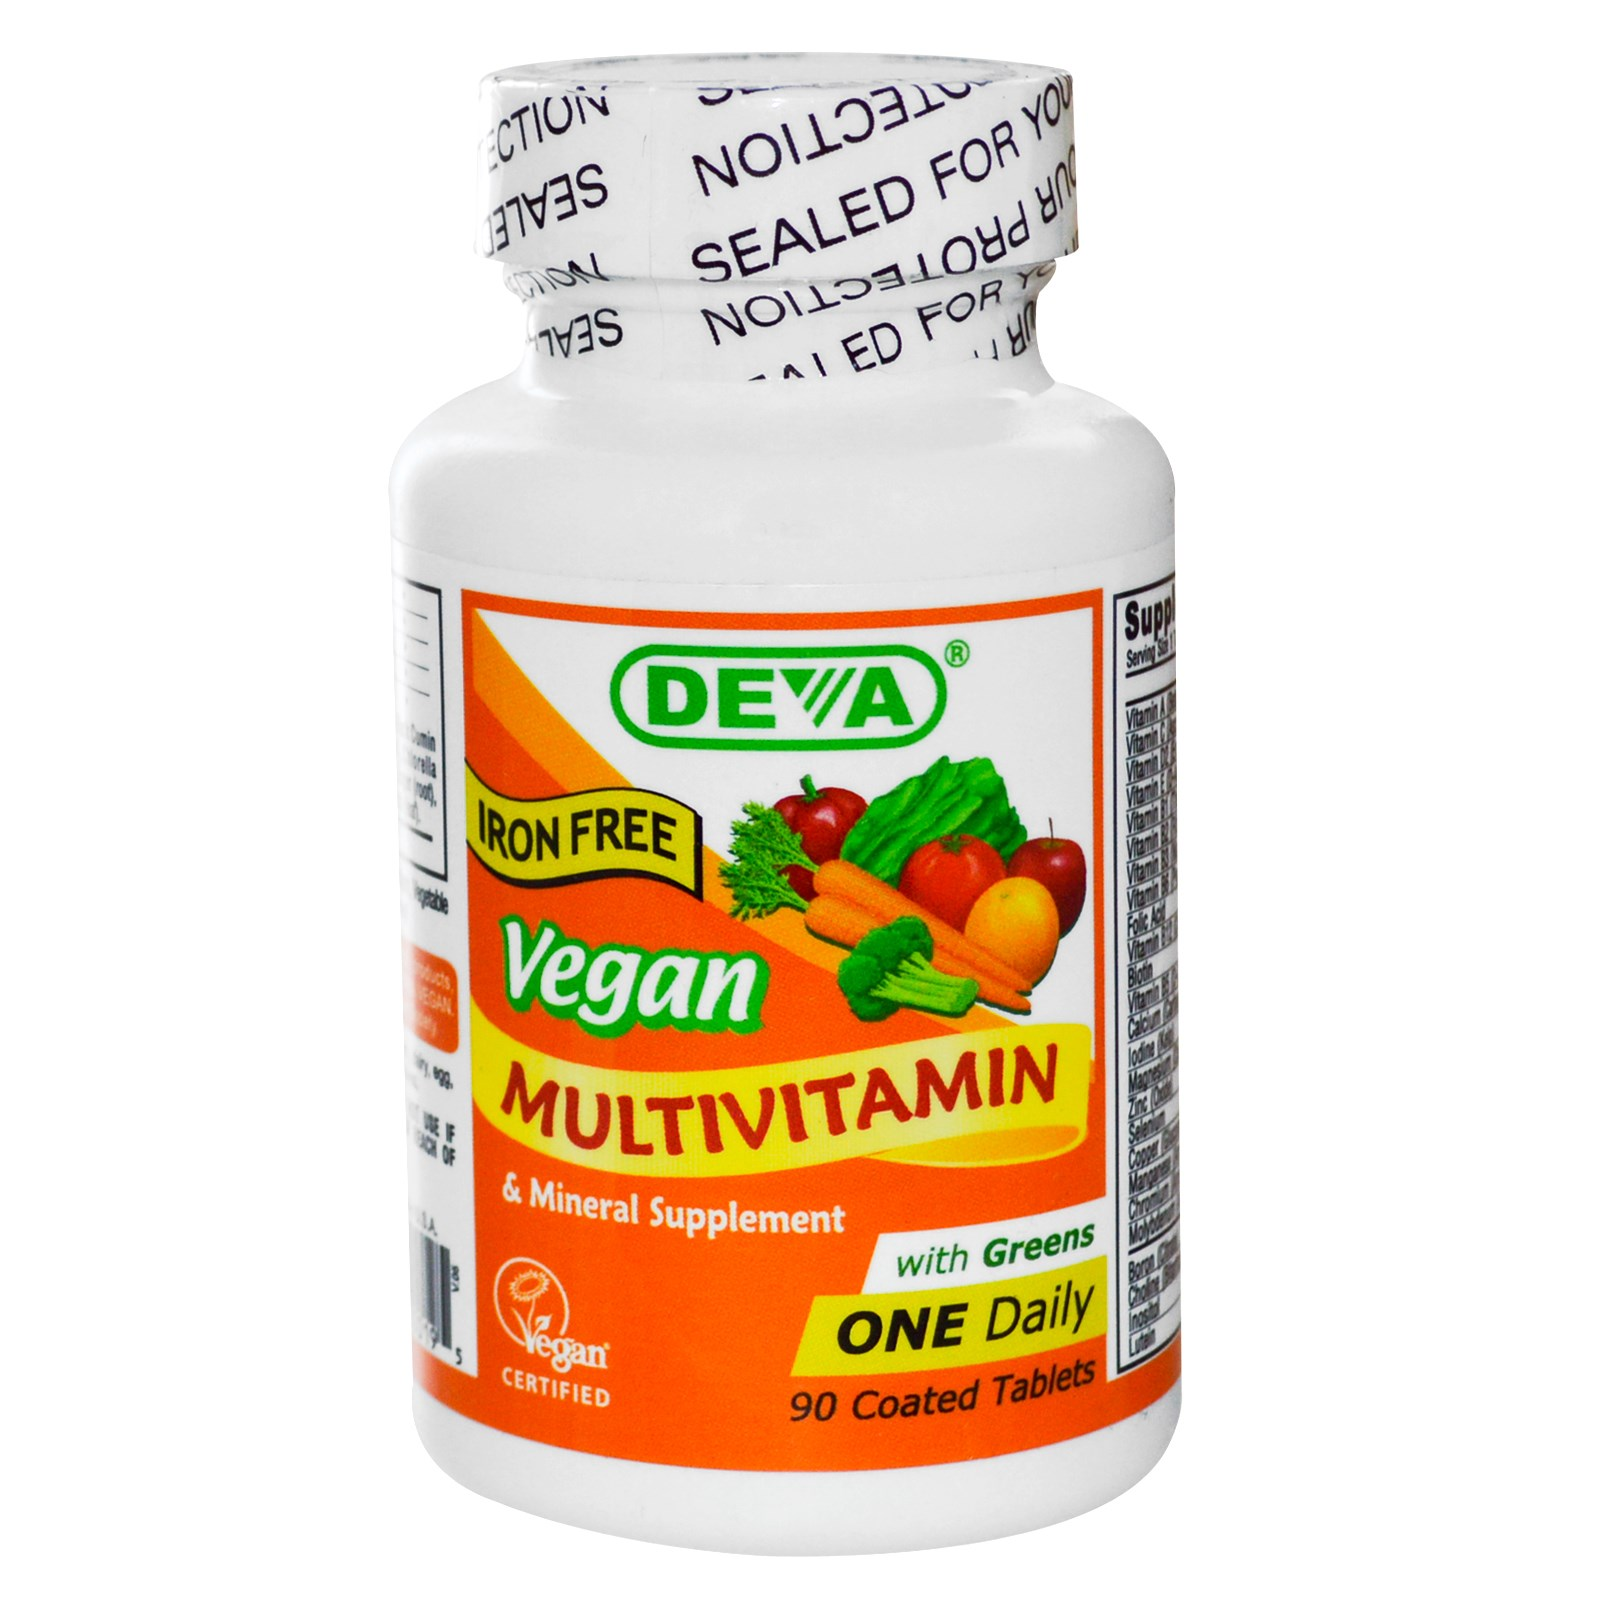 Buy Deva Multivitamin Amp Mineral Supplement Vegan Iron